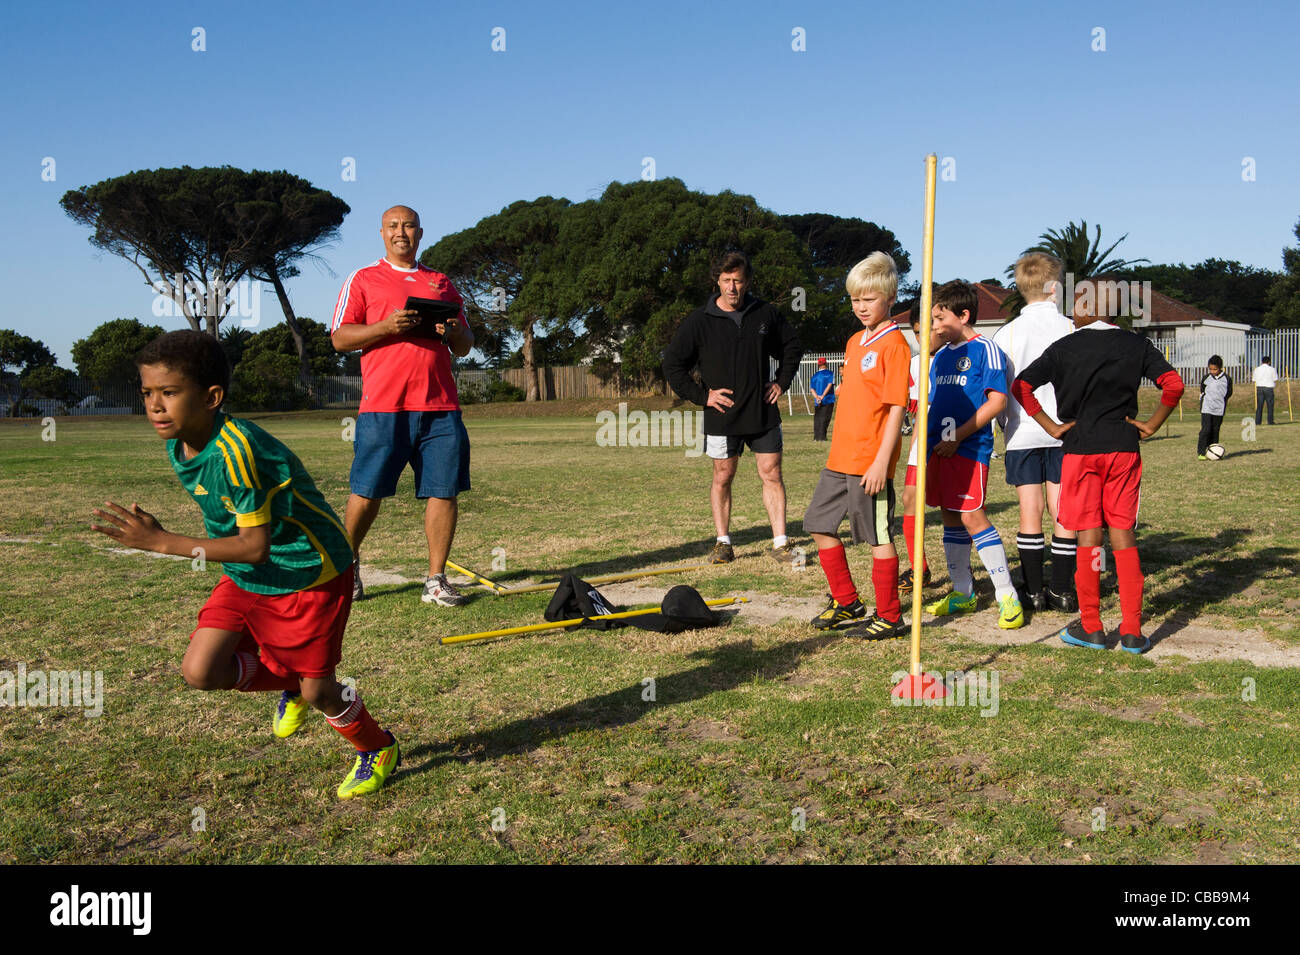 Football coach watching youth players exercising sprints Cape Town South Africa - Stock Image